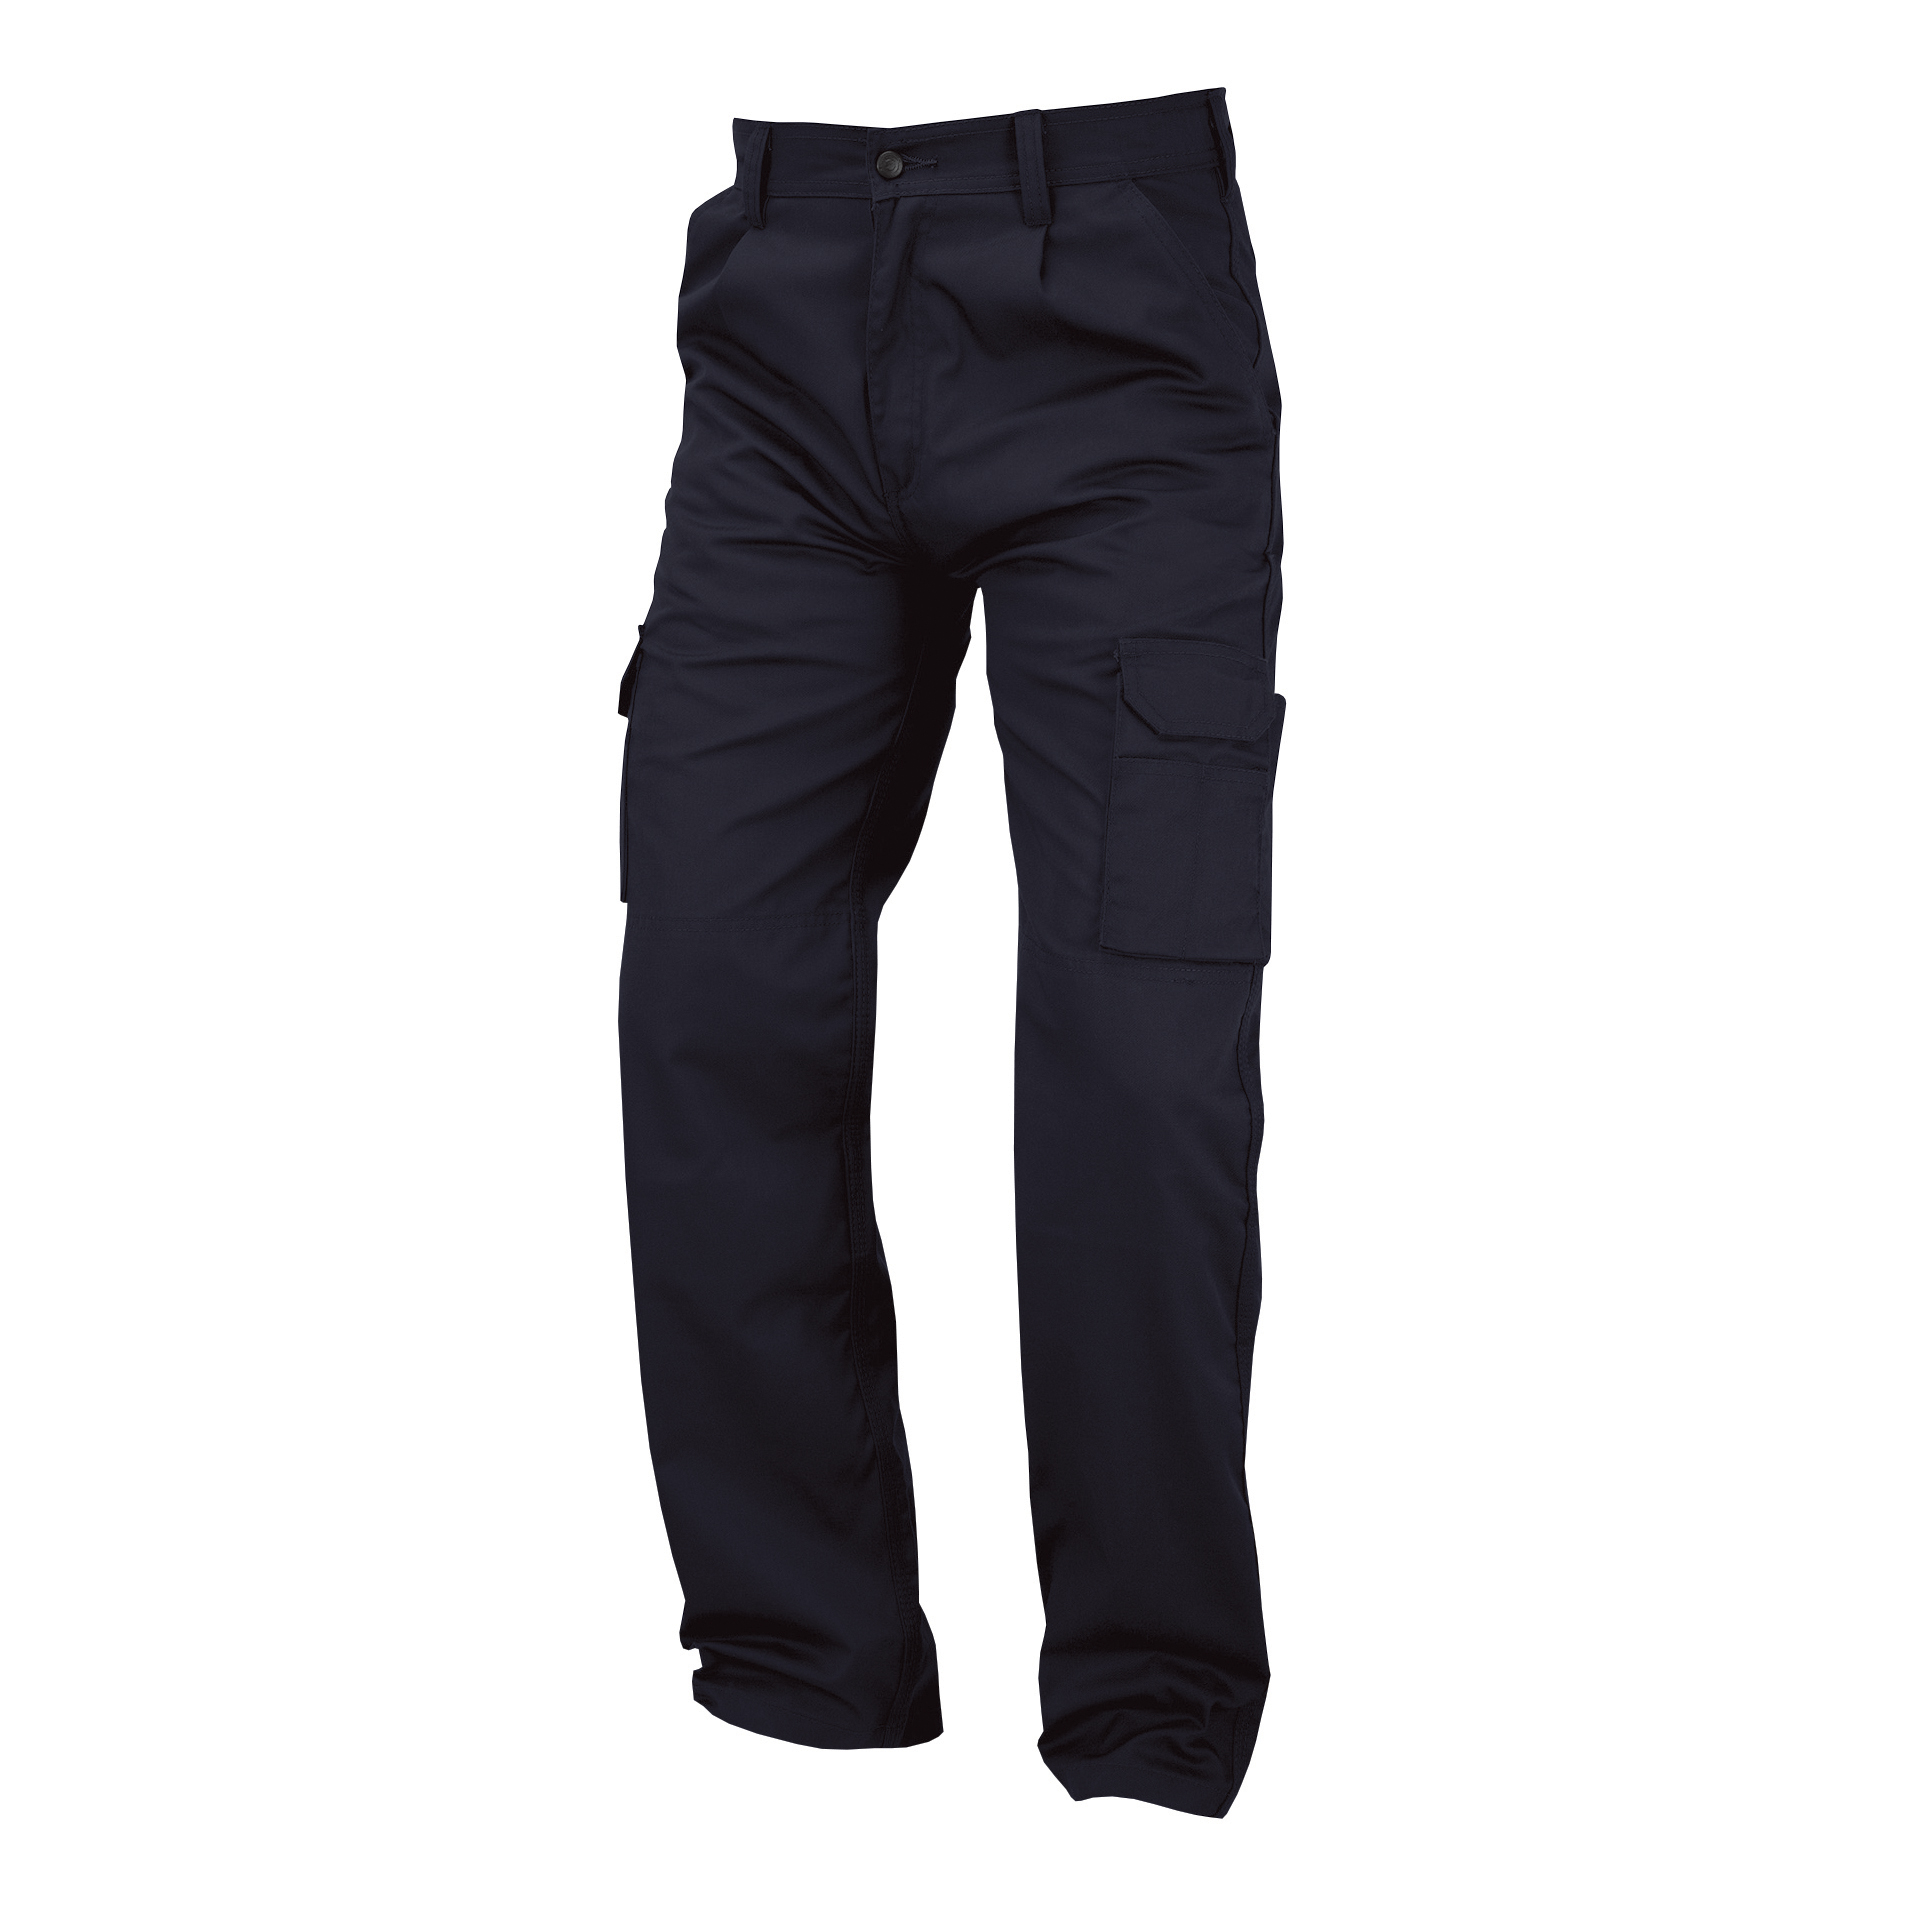 Combat / Cargo Combat Trousers Polycotton with Pockets 40in Long Navy Blue Ref PCTHWN40T *1-3 Days Lead Time*